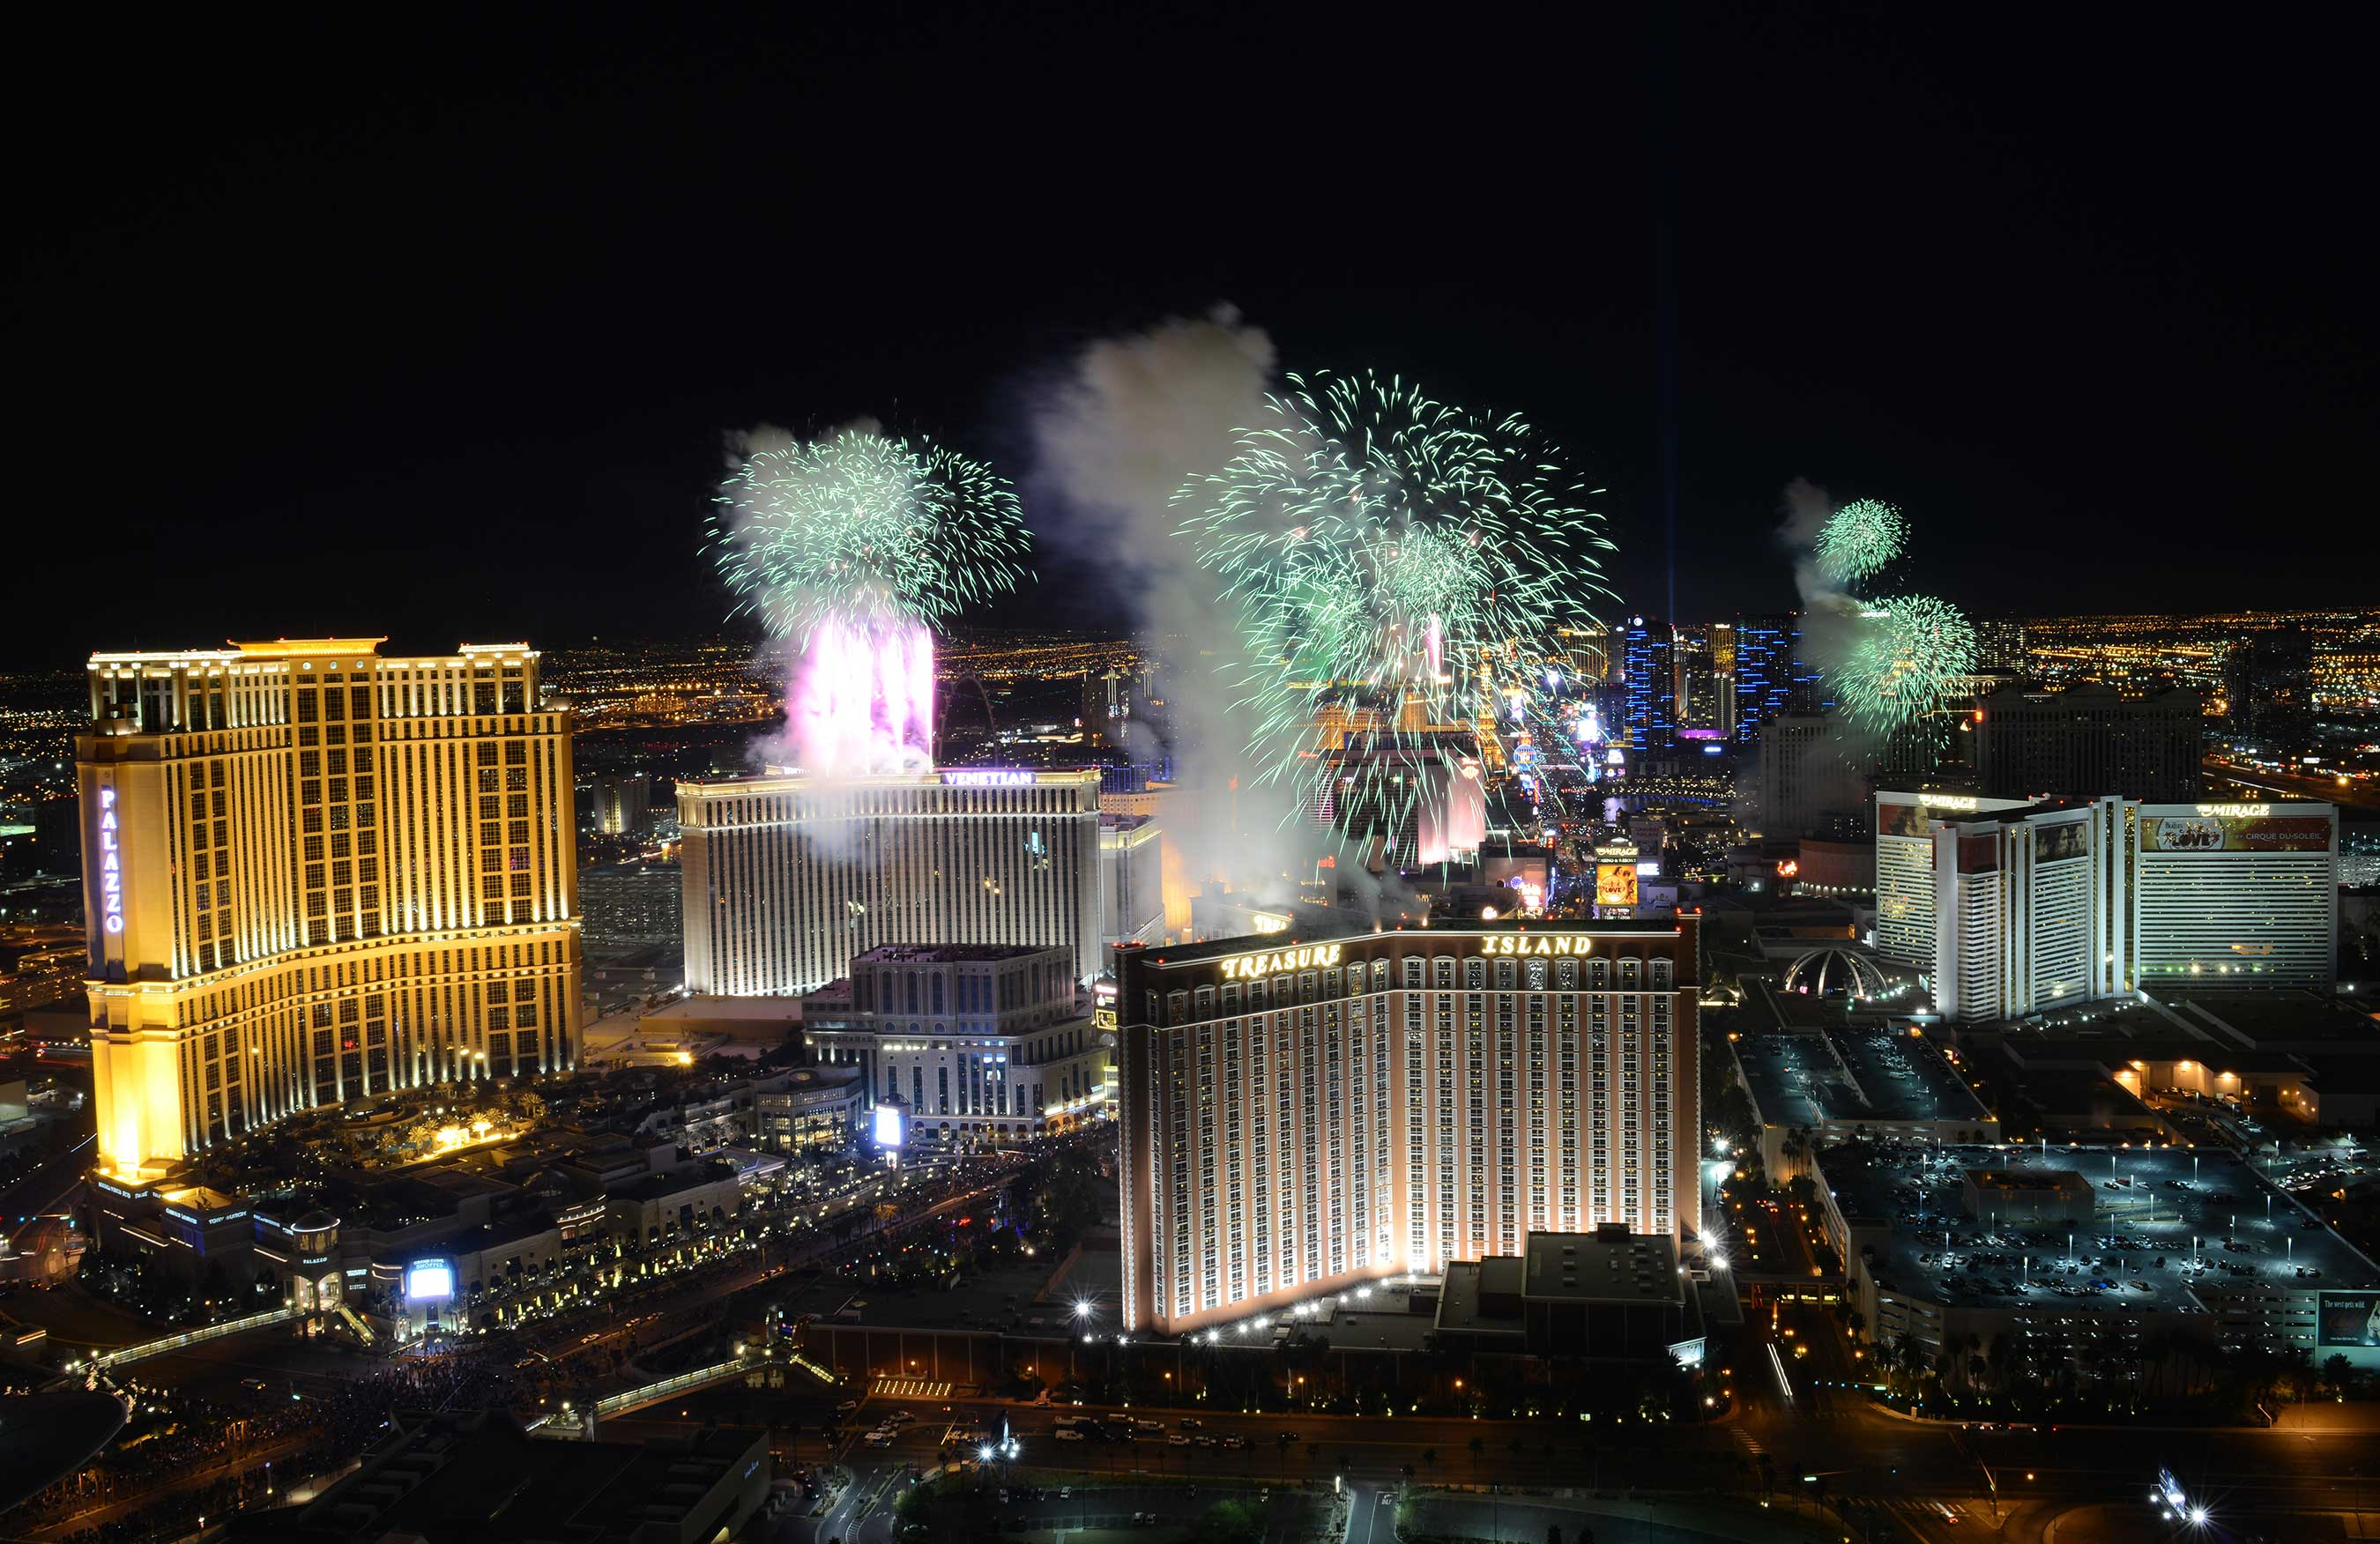 LAS VEGAS RINGS IN 2015 WITH DAZZLING NEW YEAR S EVE EXTRAVAGANZAS View of Las Vegas ringing in 2014 from Trump International Hotel